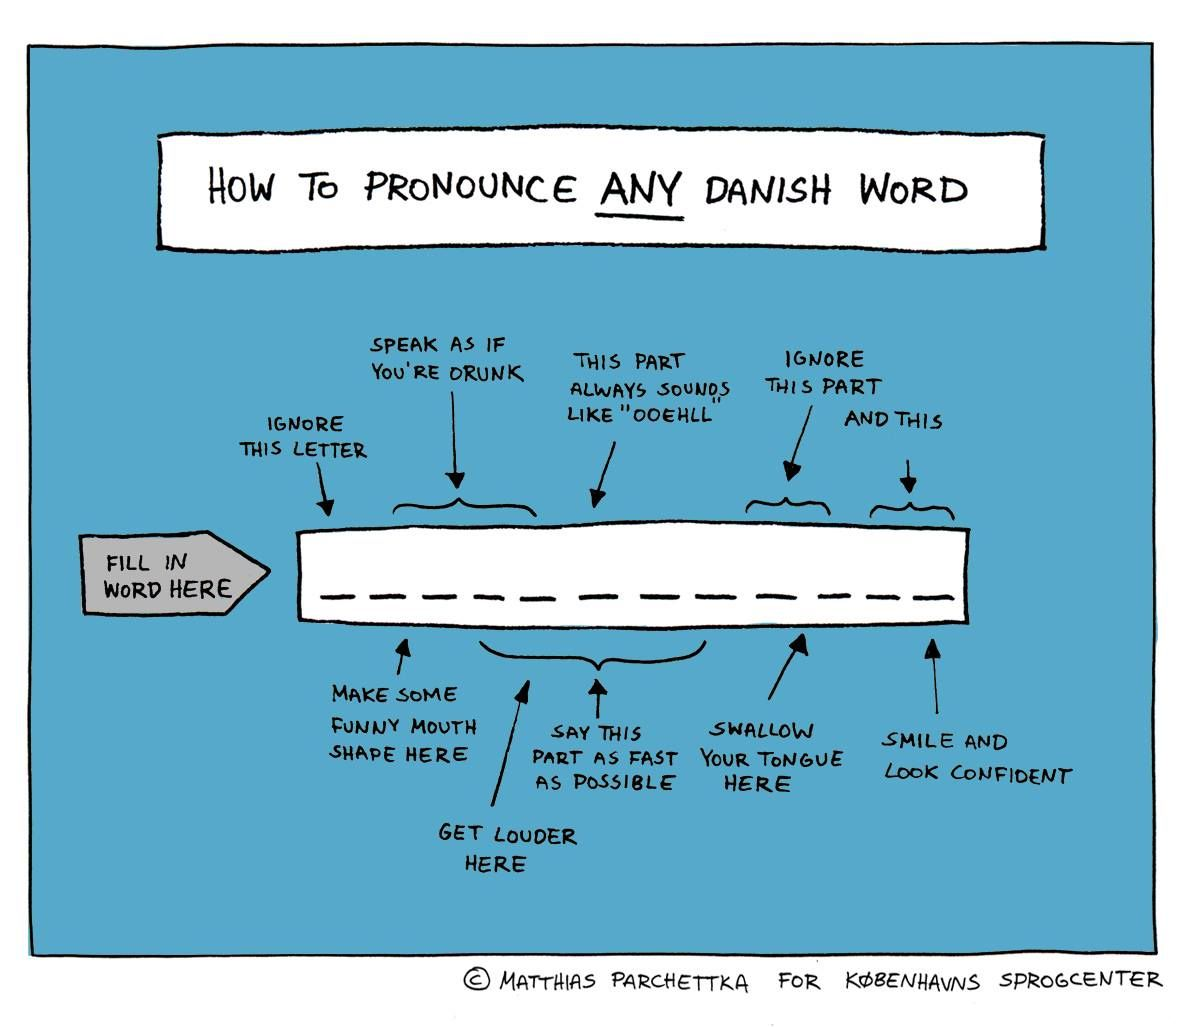 Mocking Danish pronounciation